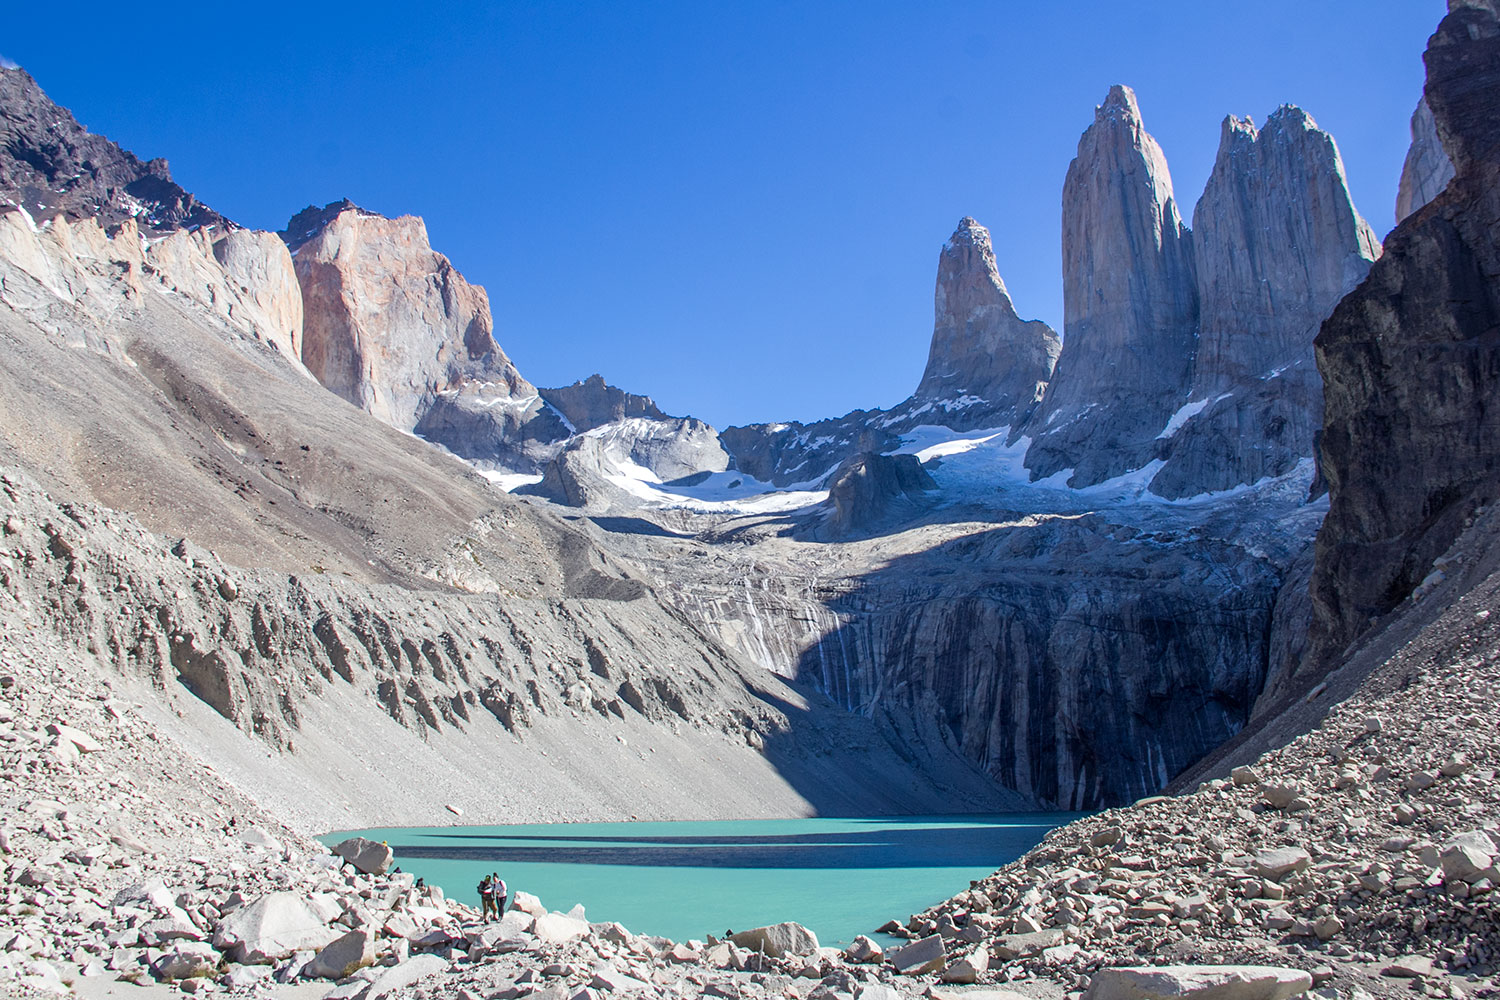 View of the three towers forming Torres del Paine.